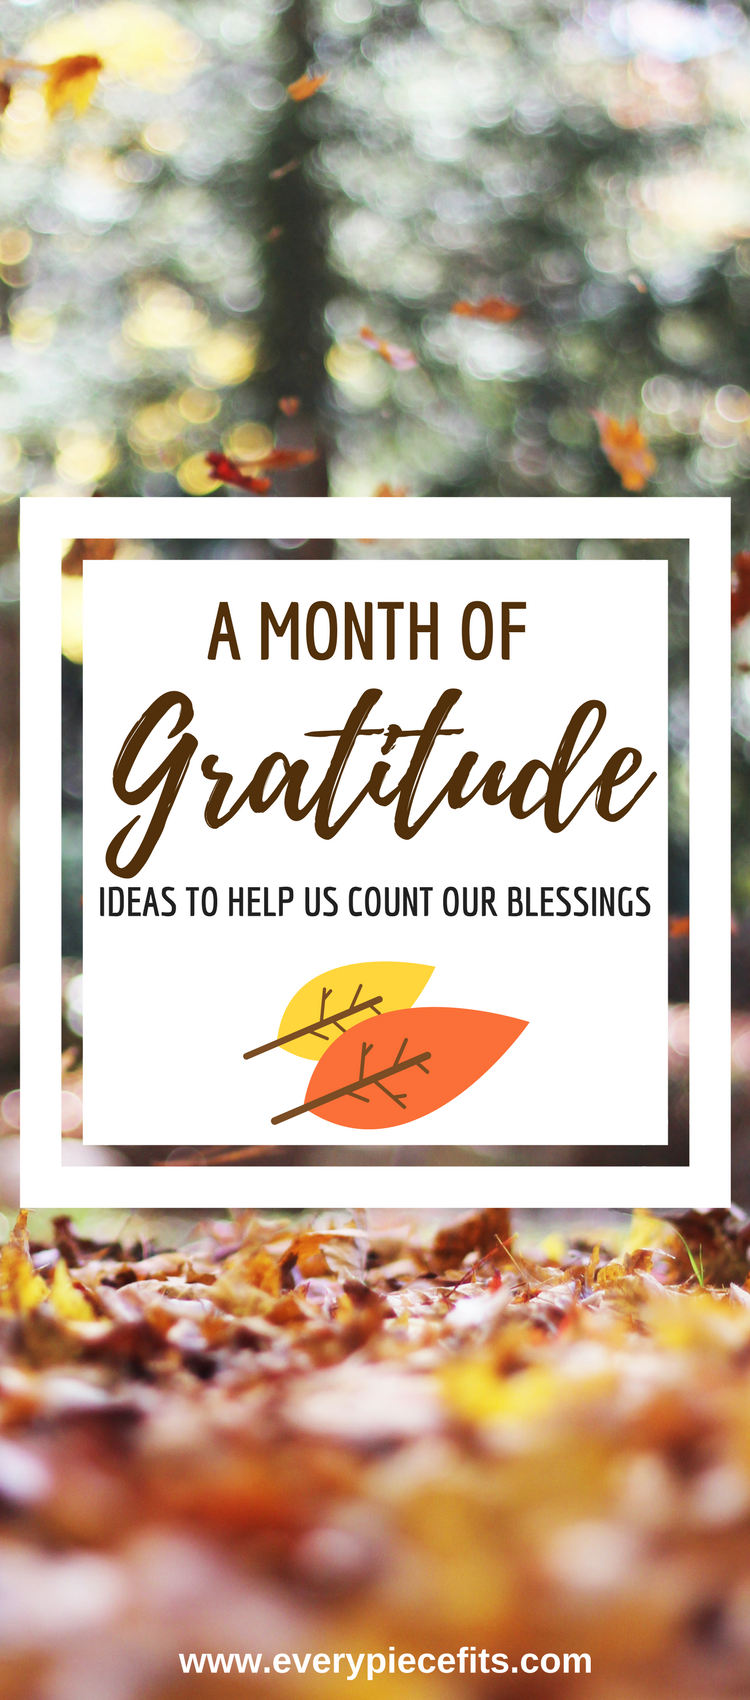 Pinterest A Month of Gratitude - Ideas to help count our blessings.png